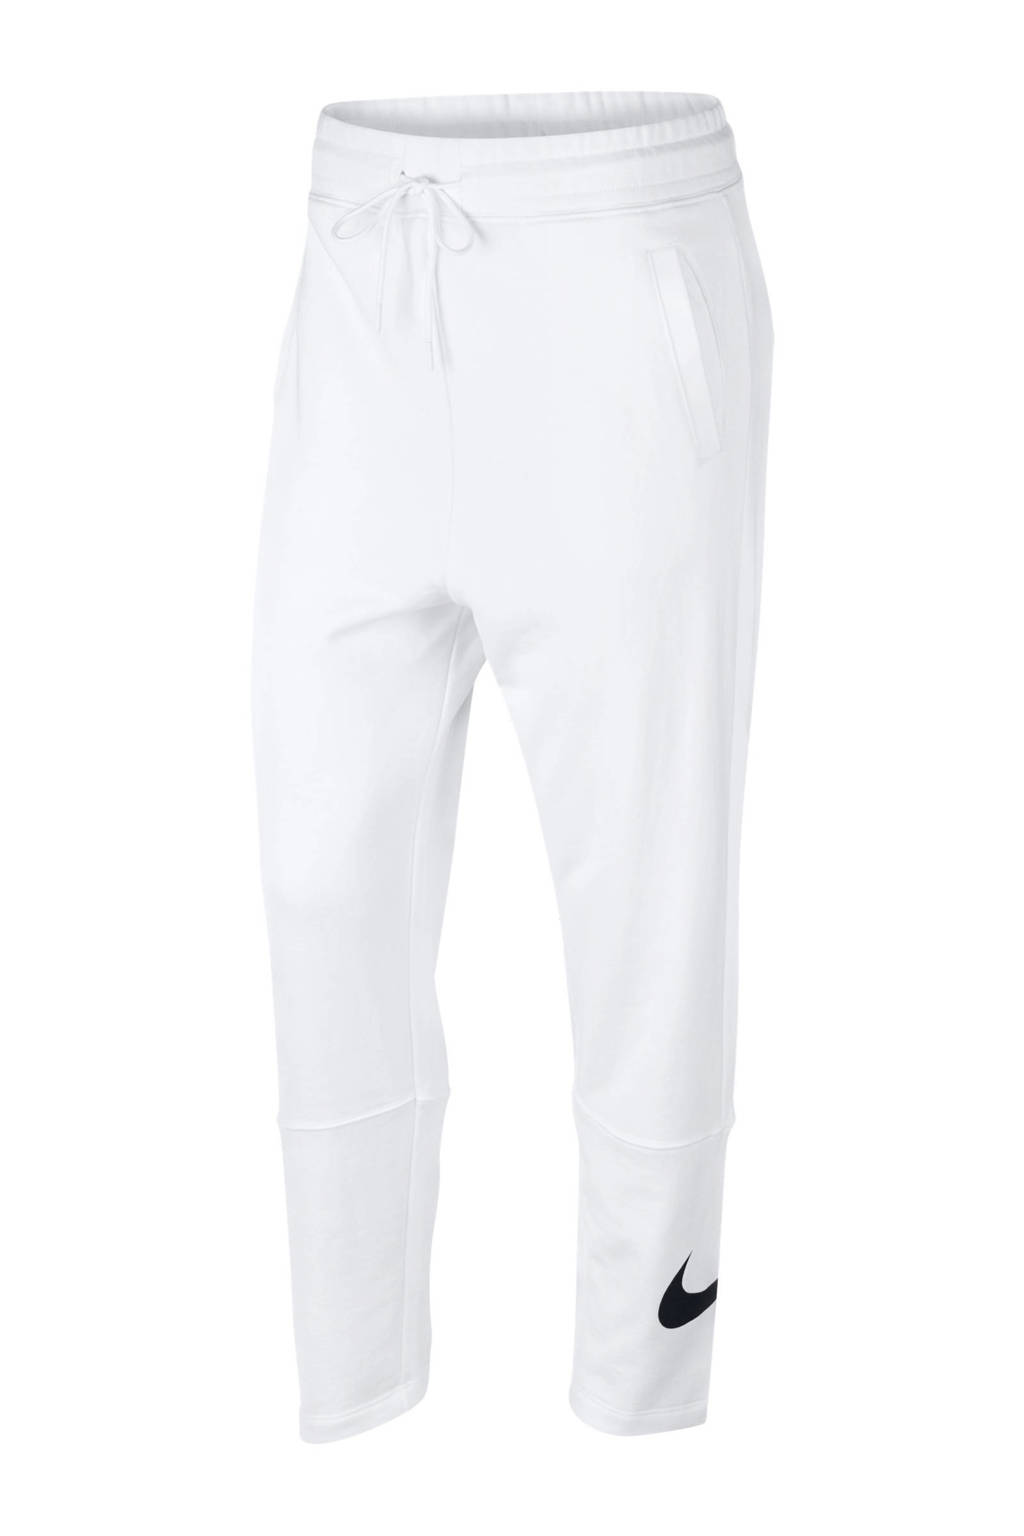 Nike joggingbroek wit, Wit